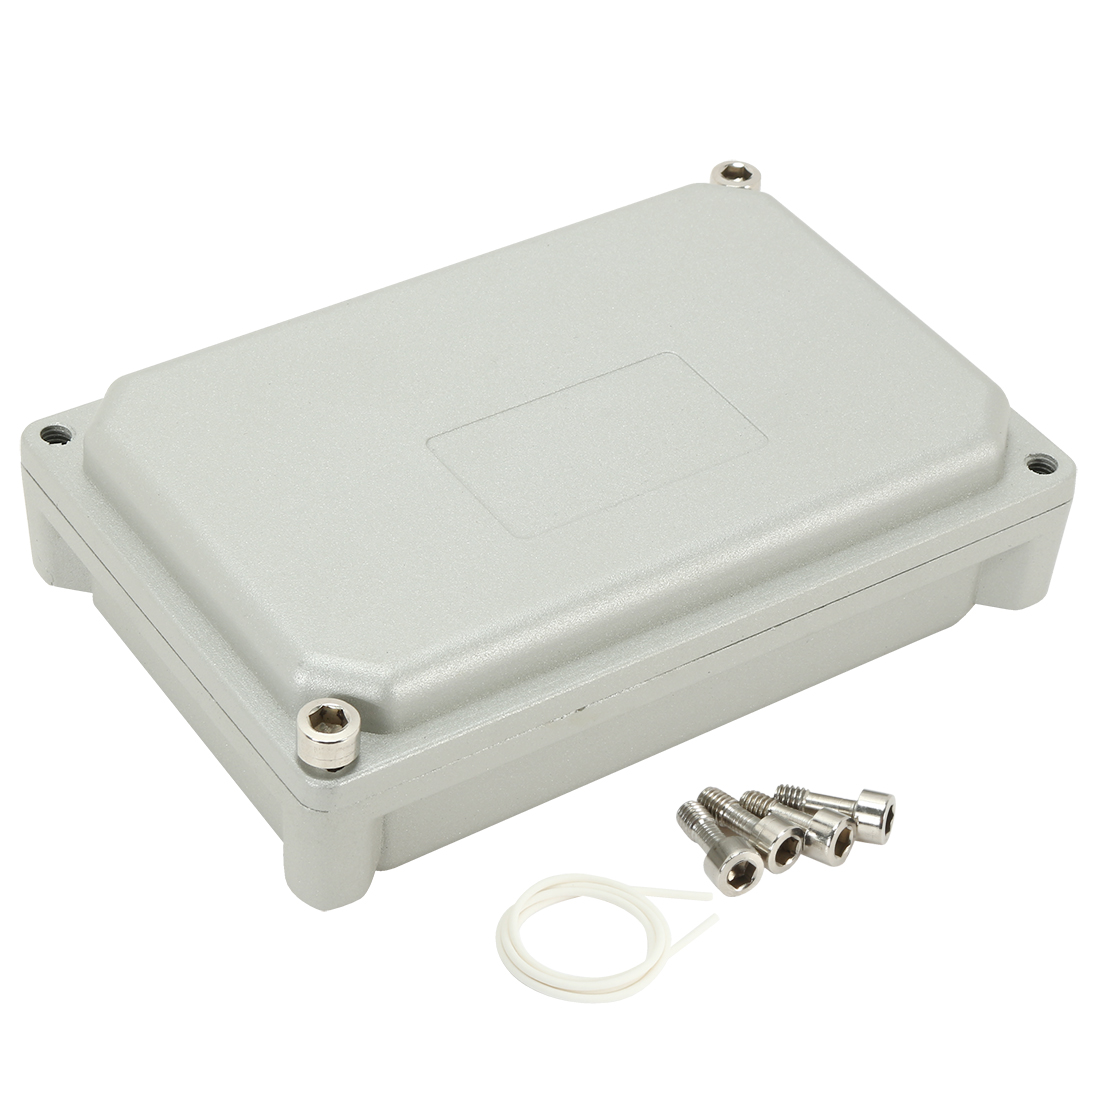 "5.7""x3.9""x1.8""(145mmx100mmx45mm) Aluminum Junction Box Universal Electric Project Enclosure"